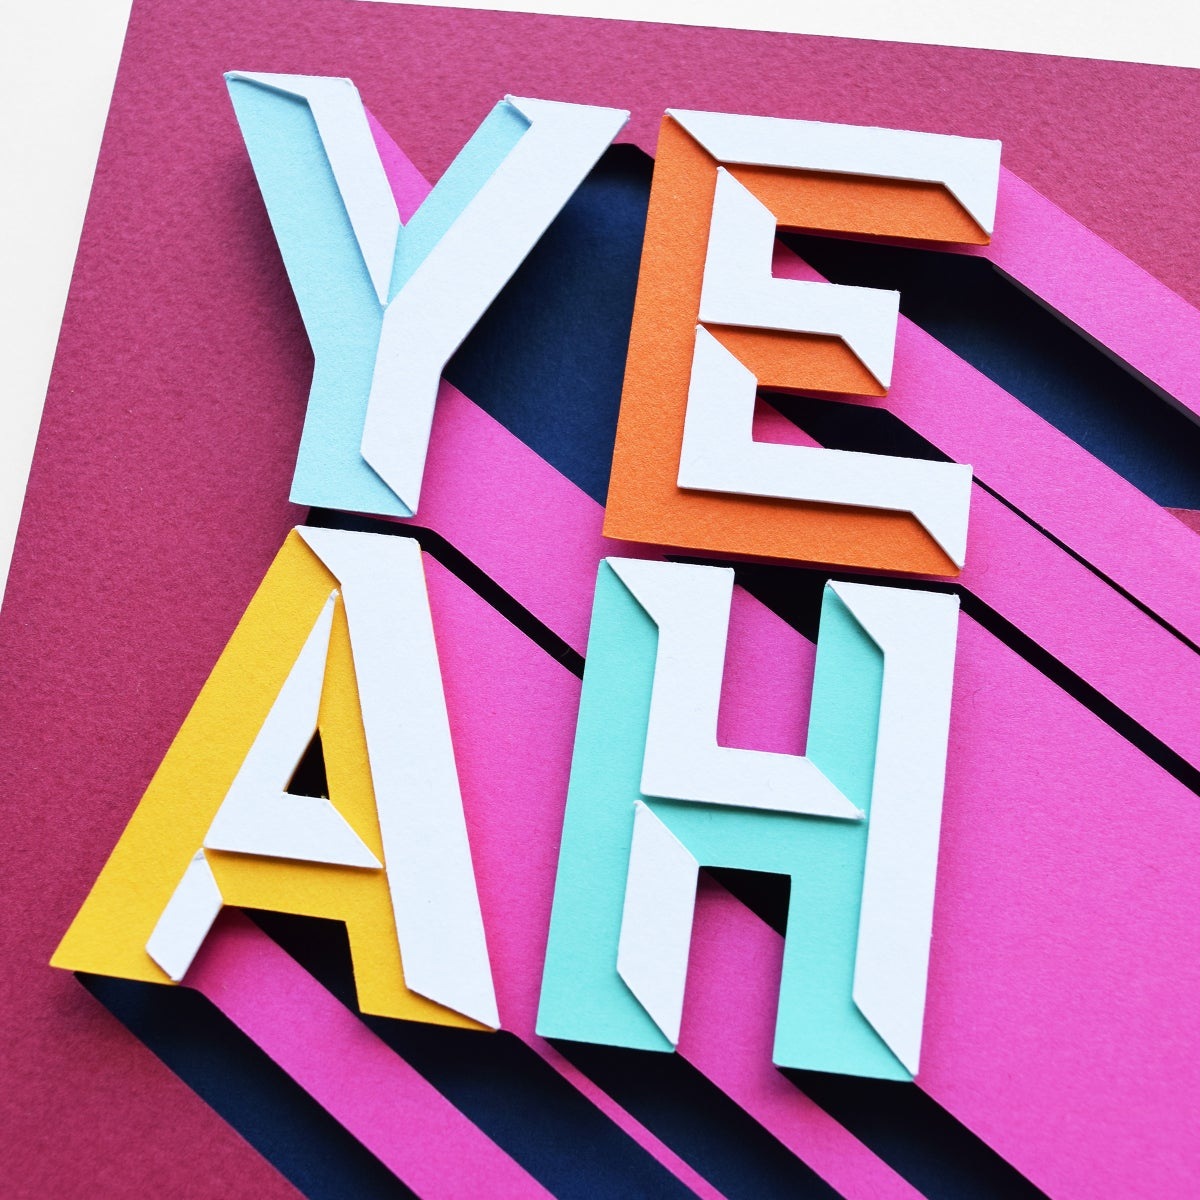 Image of YEAH – Framed Original Paper Cut Artwork